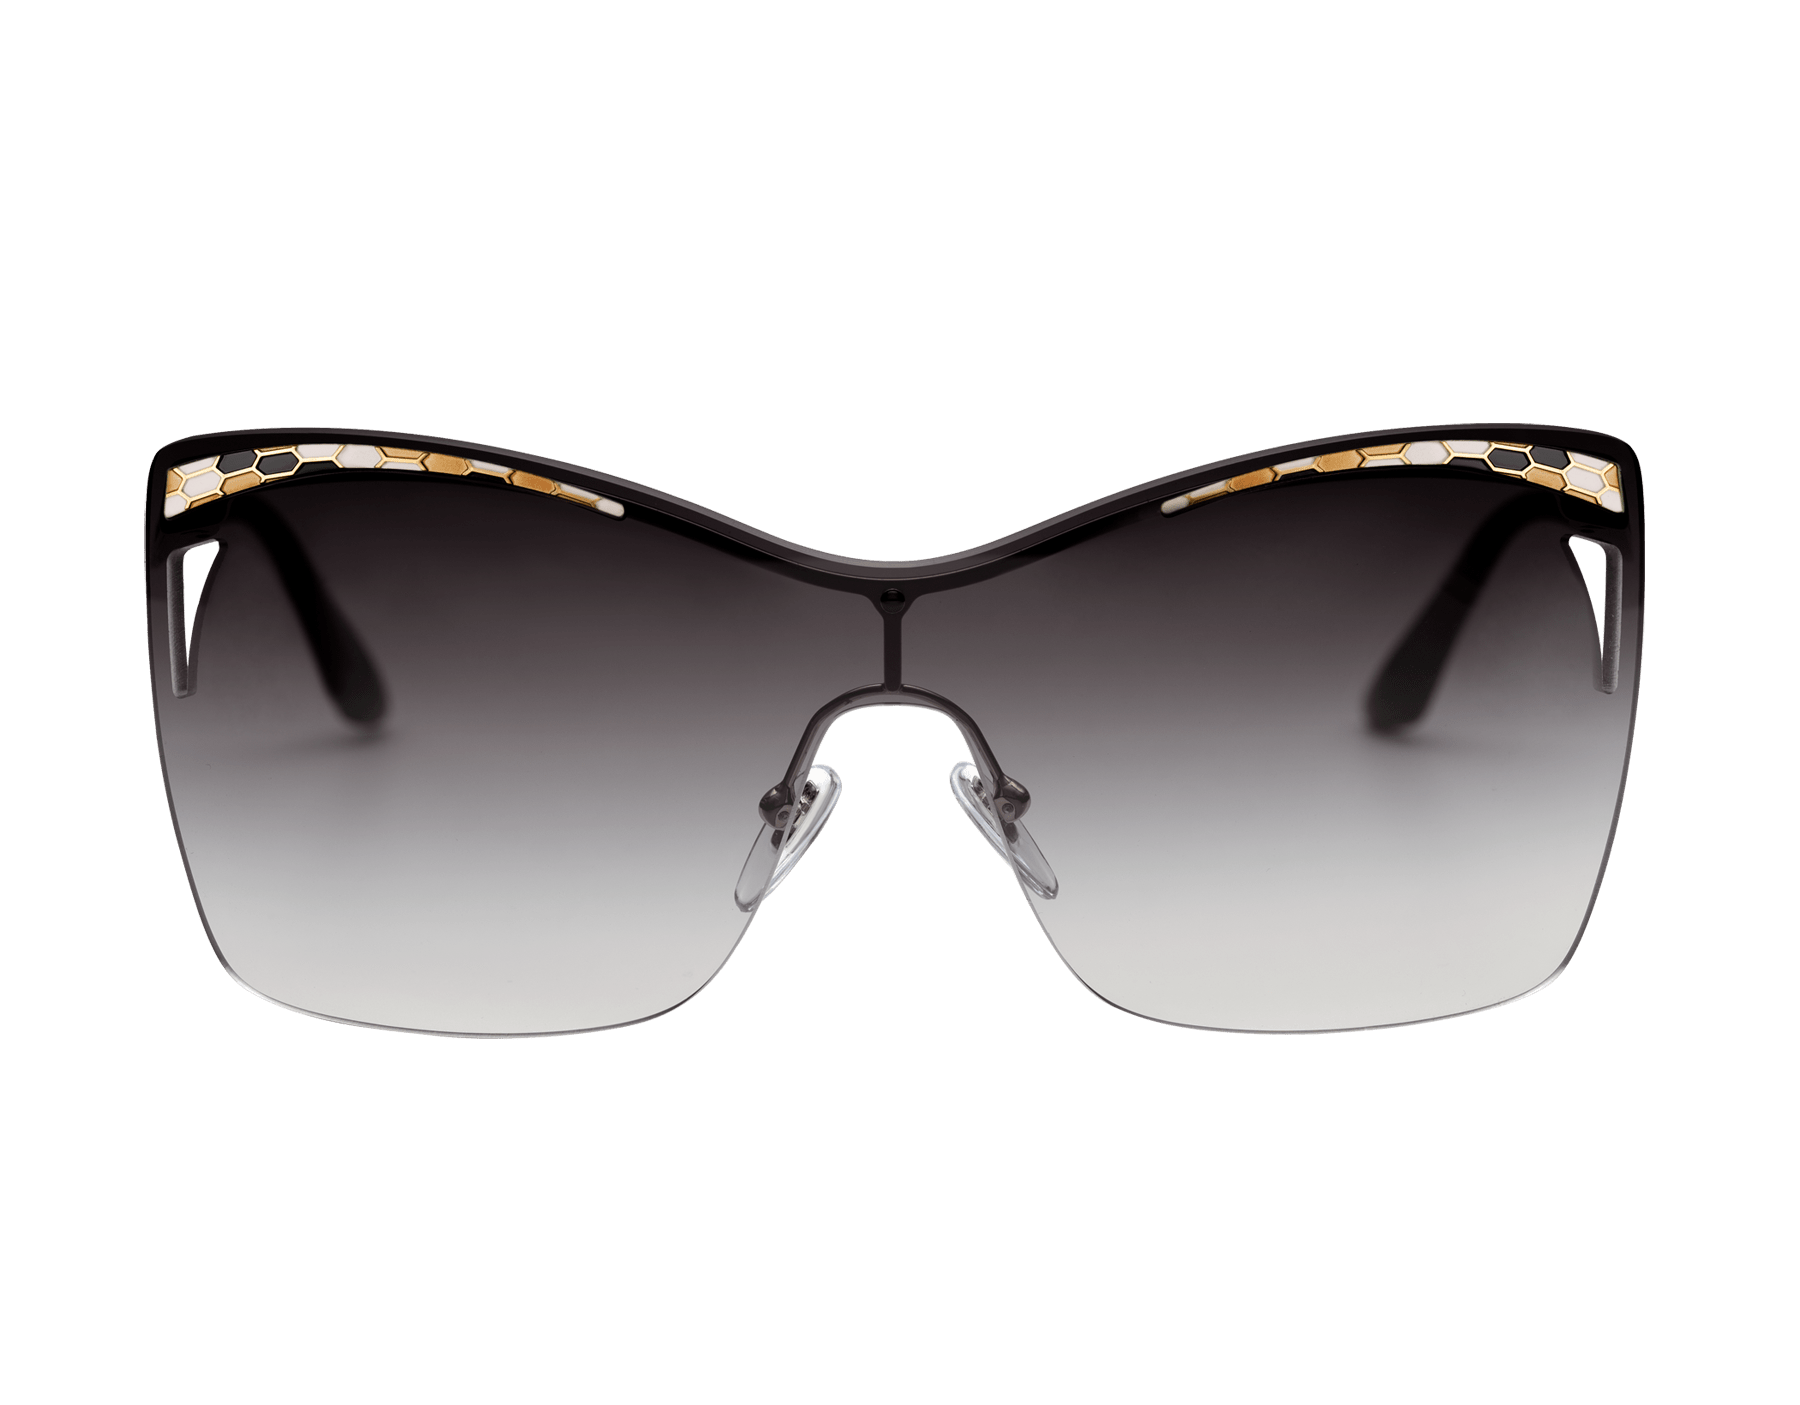 Bulgari Serpenti Eye-bite metal shield sunglasses. 903979 image 2